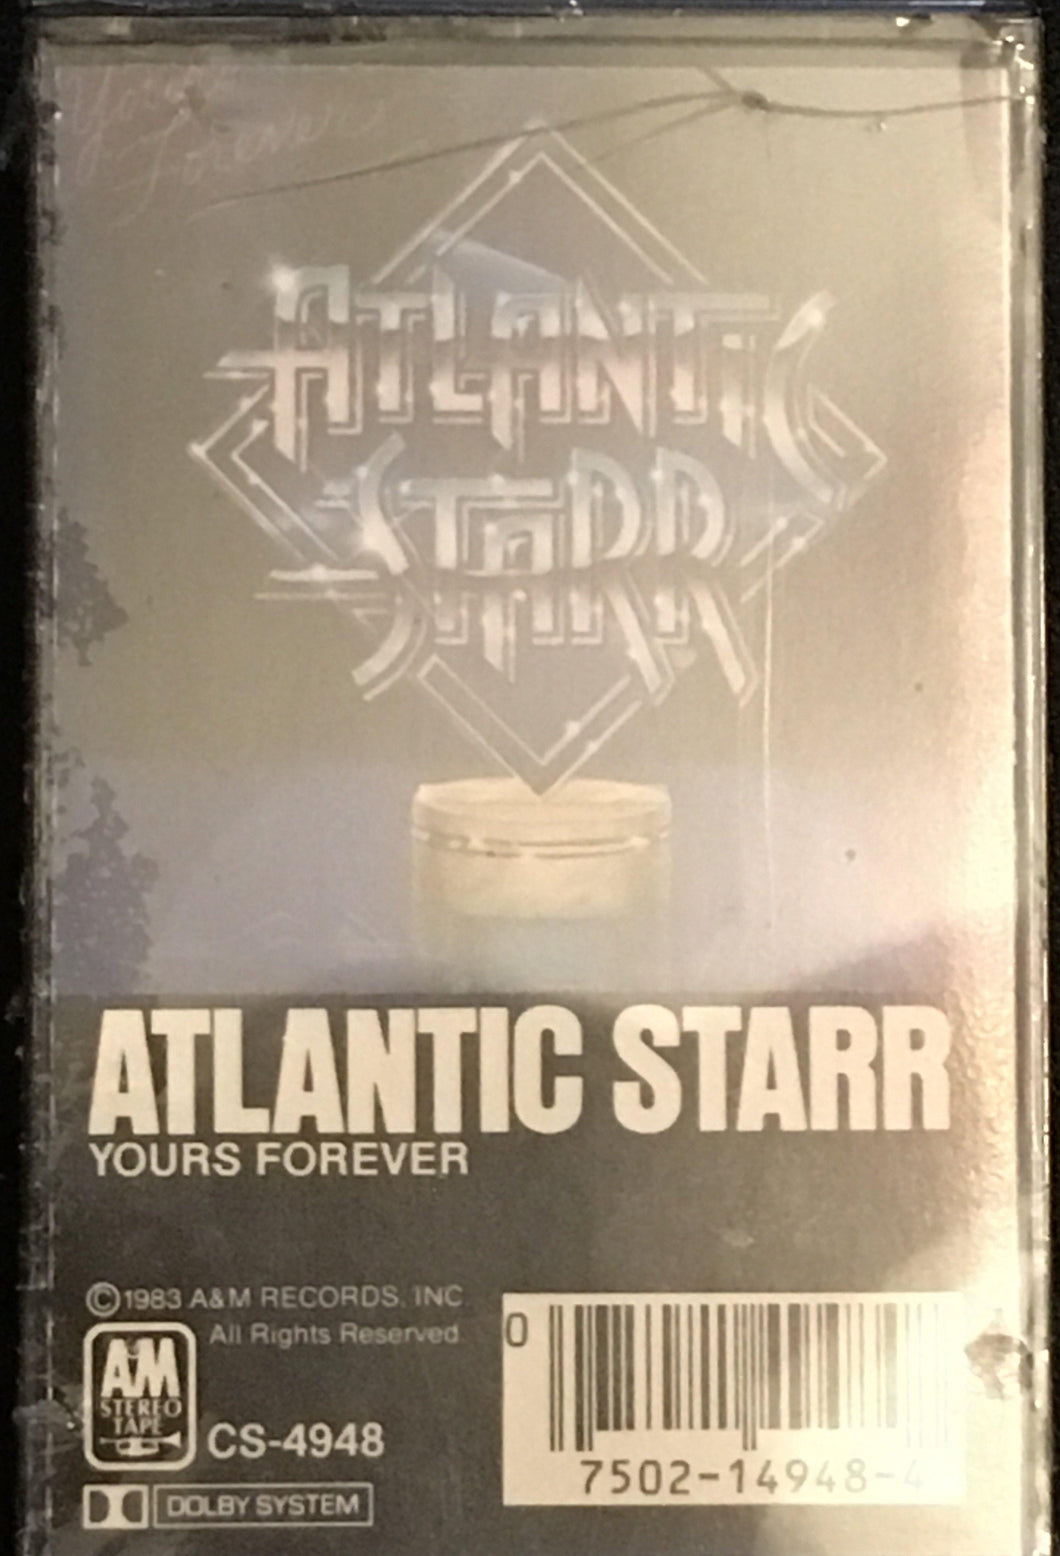 Atlantic Starr- Yours Forever (Mint, Sealed) Cassette